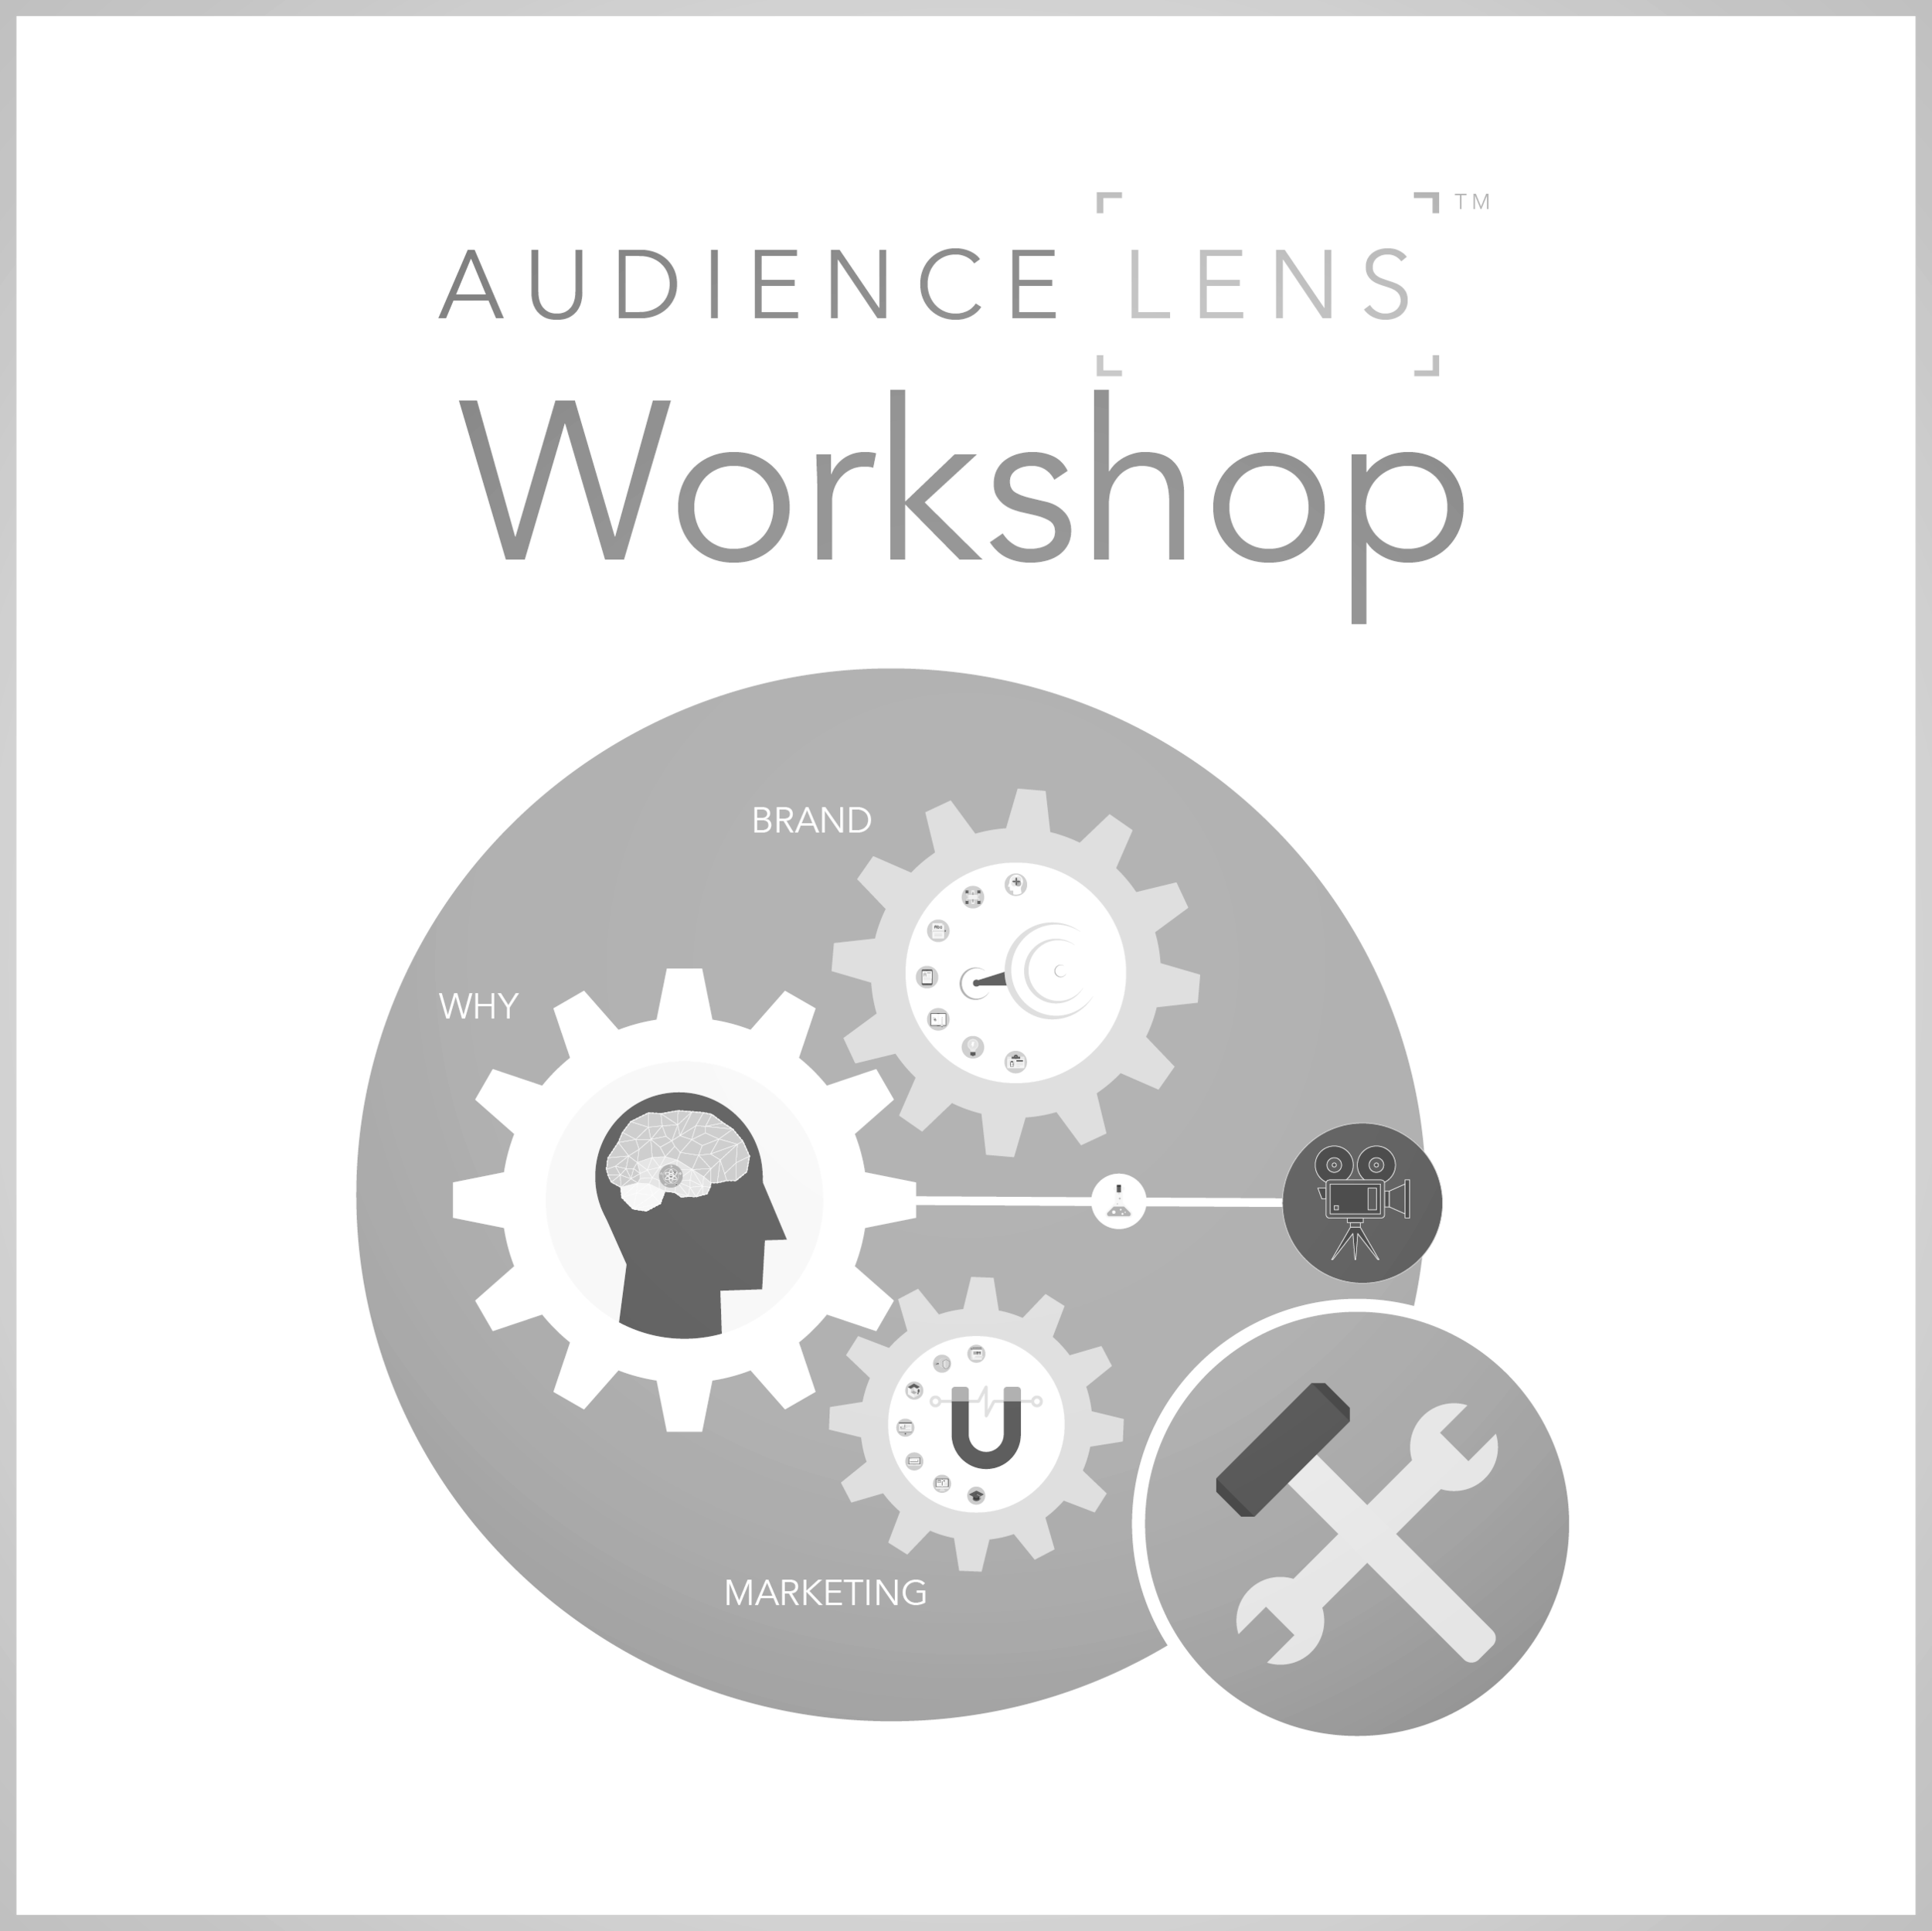 AudienceLensWorkshop.png